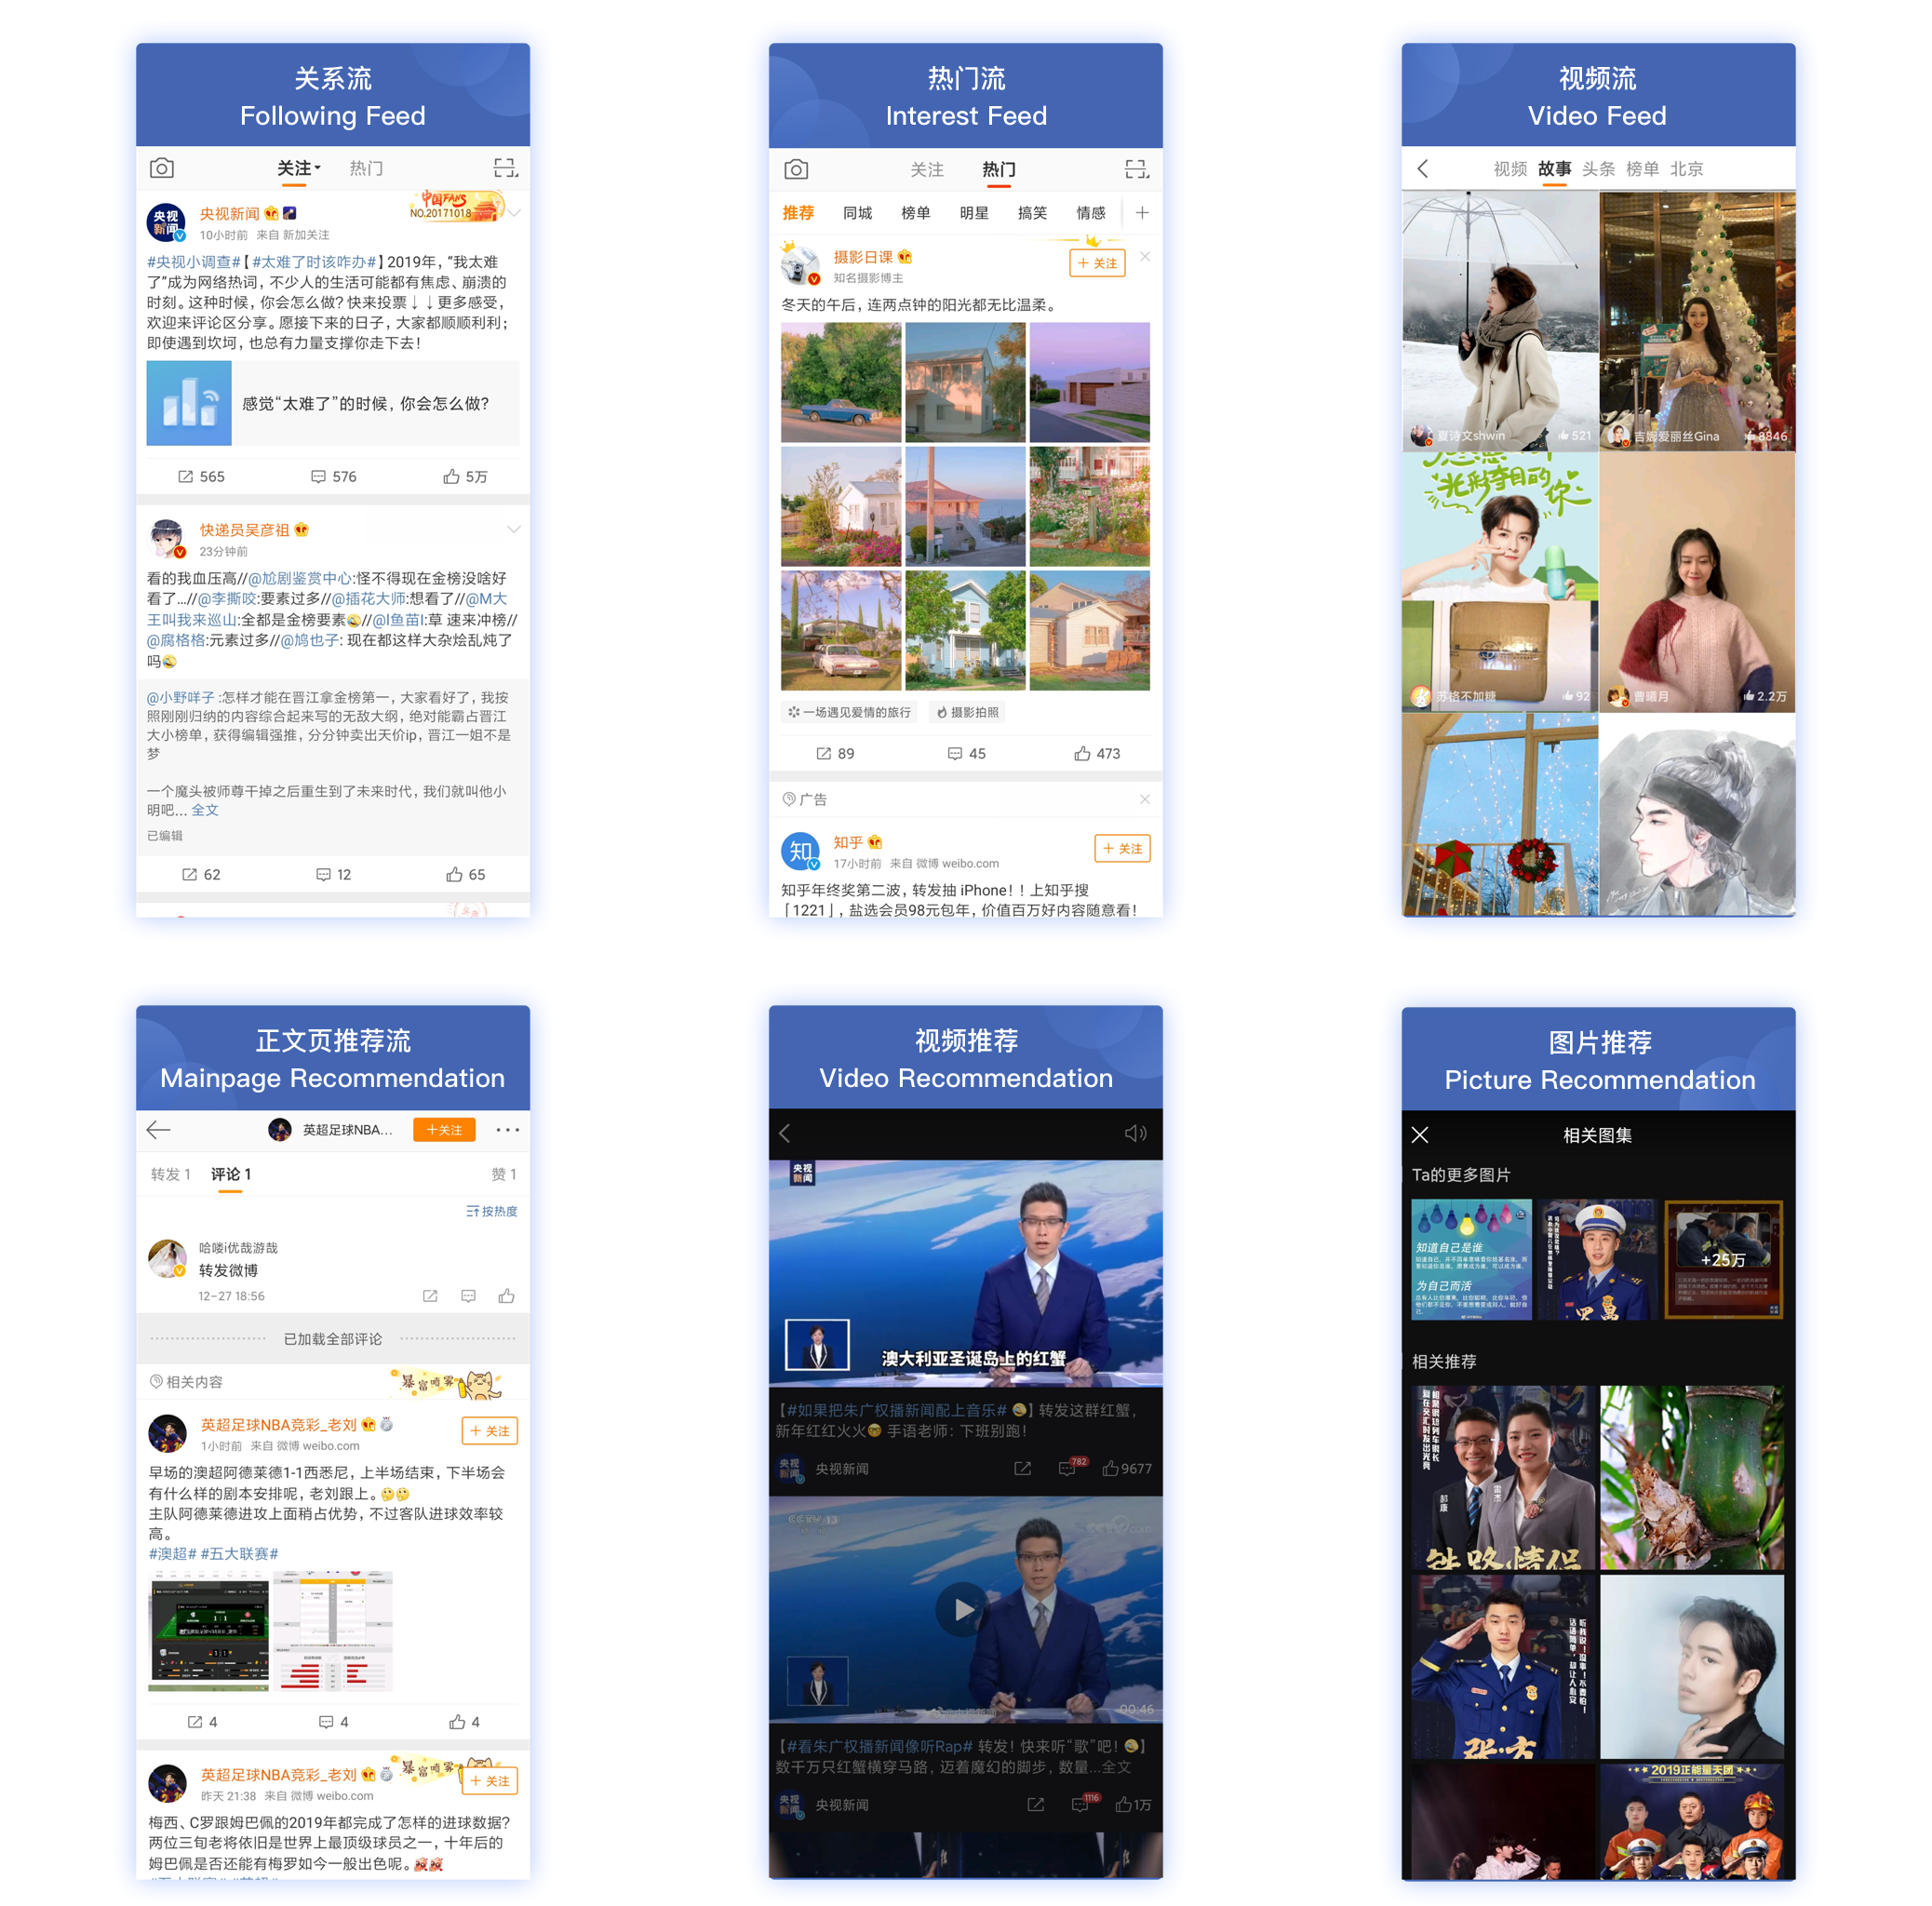 Weibo Functionality, Following Feed, Video Feed, Video Recommendation, Picture Recommendation and more